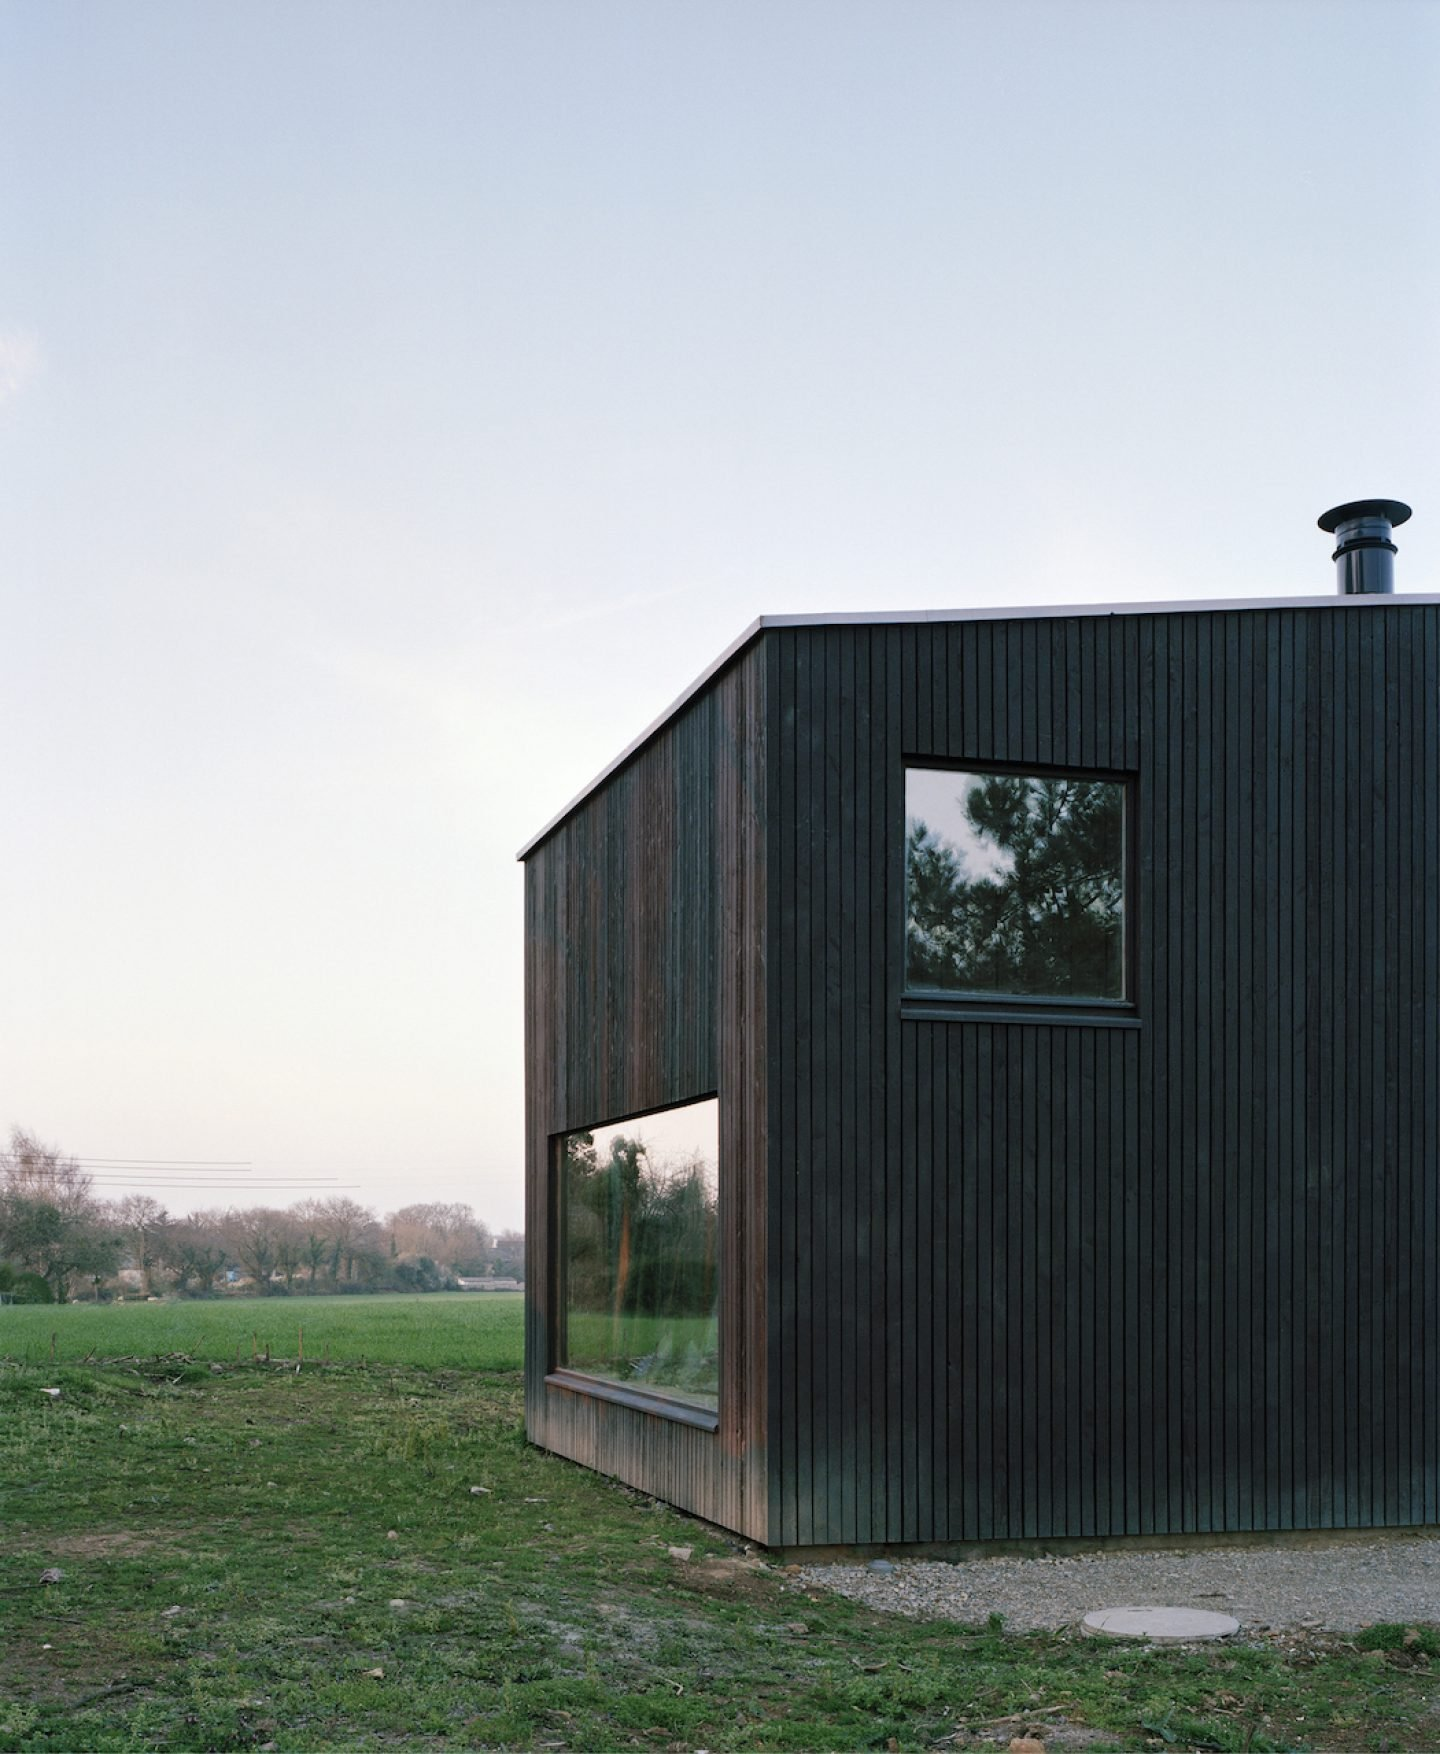 raum-oyster-shack_architecture34-07